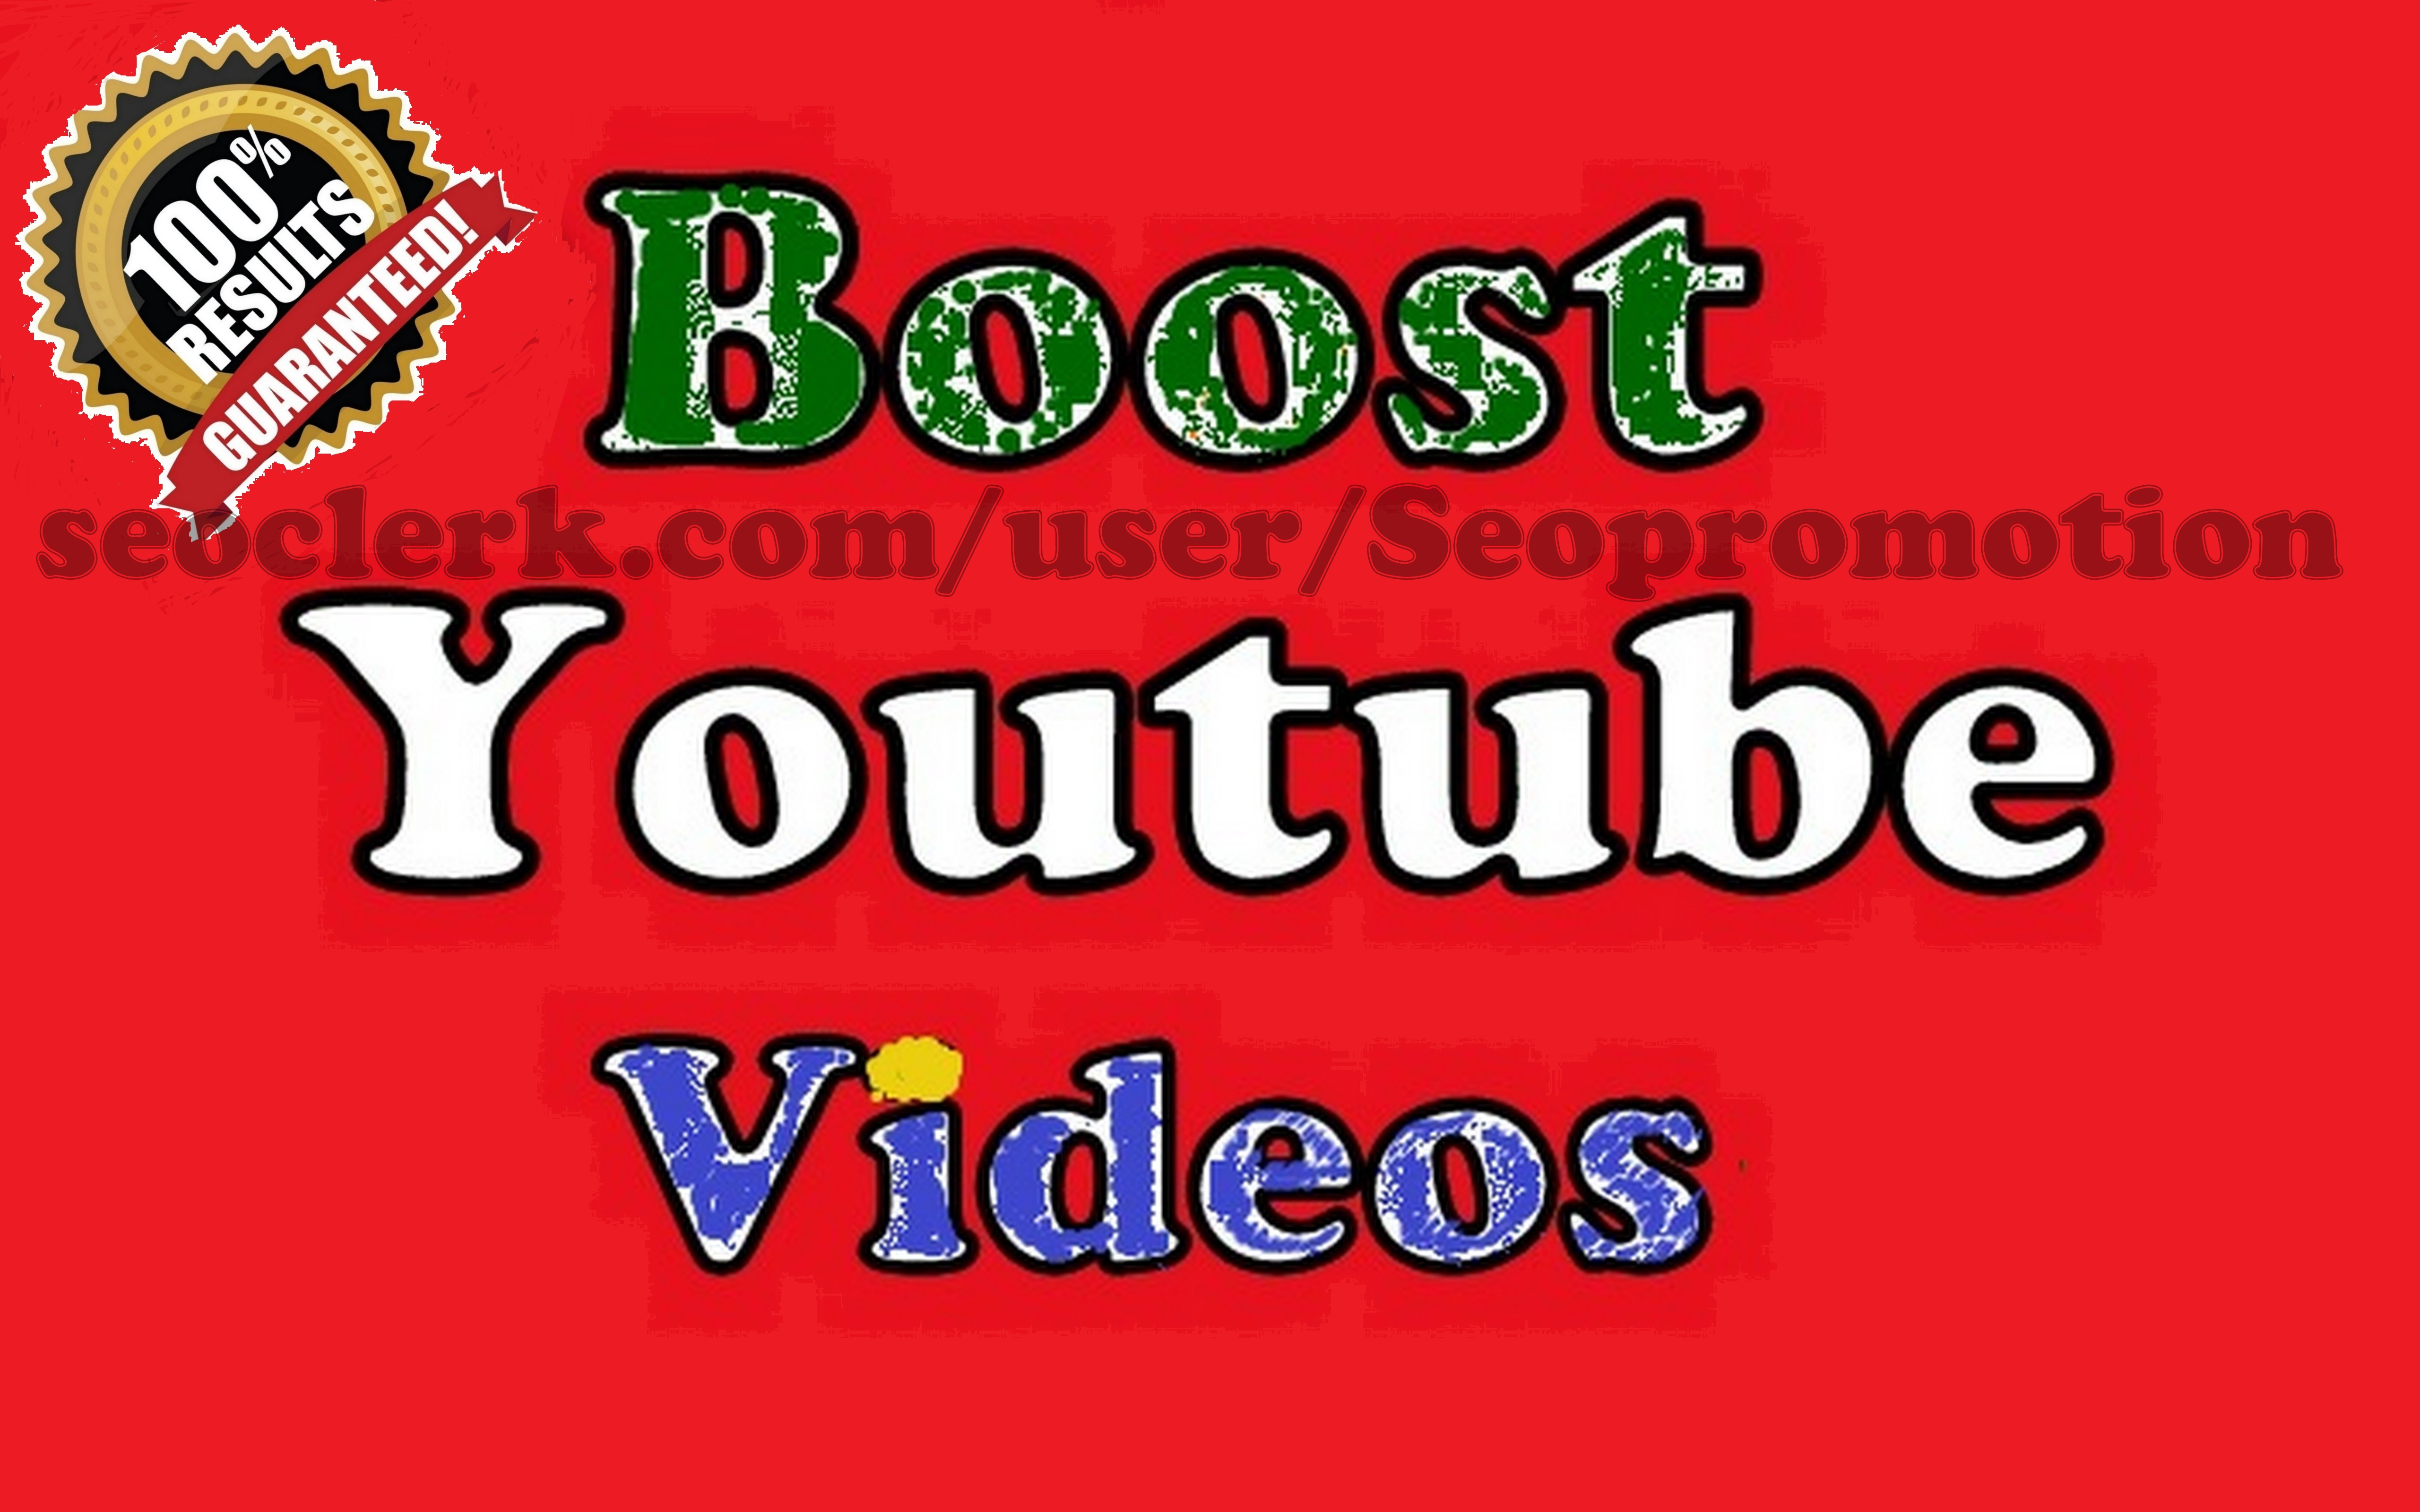 Fast video Promotion Seo Optimizied by Social Media Marketing